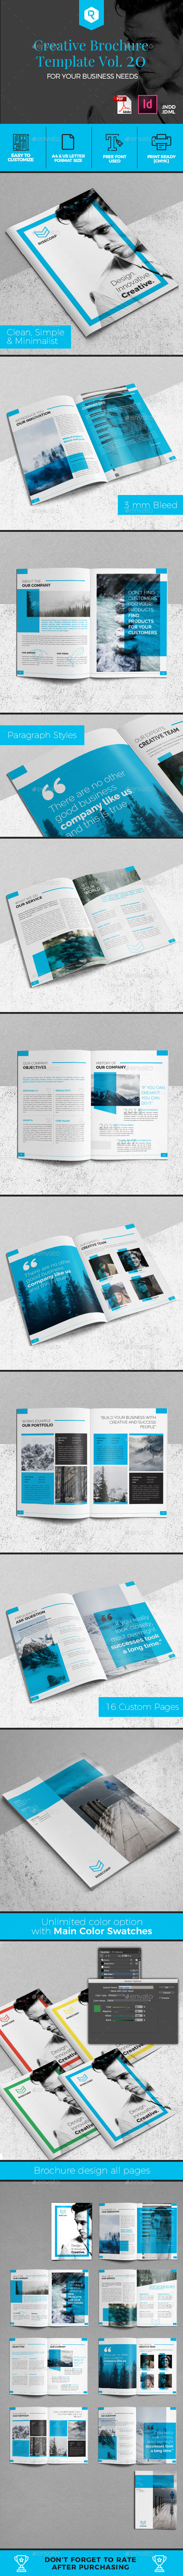 Creative Brochure Template Vol. 20 - Corporate Brochures